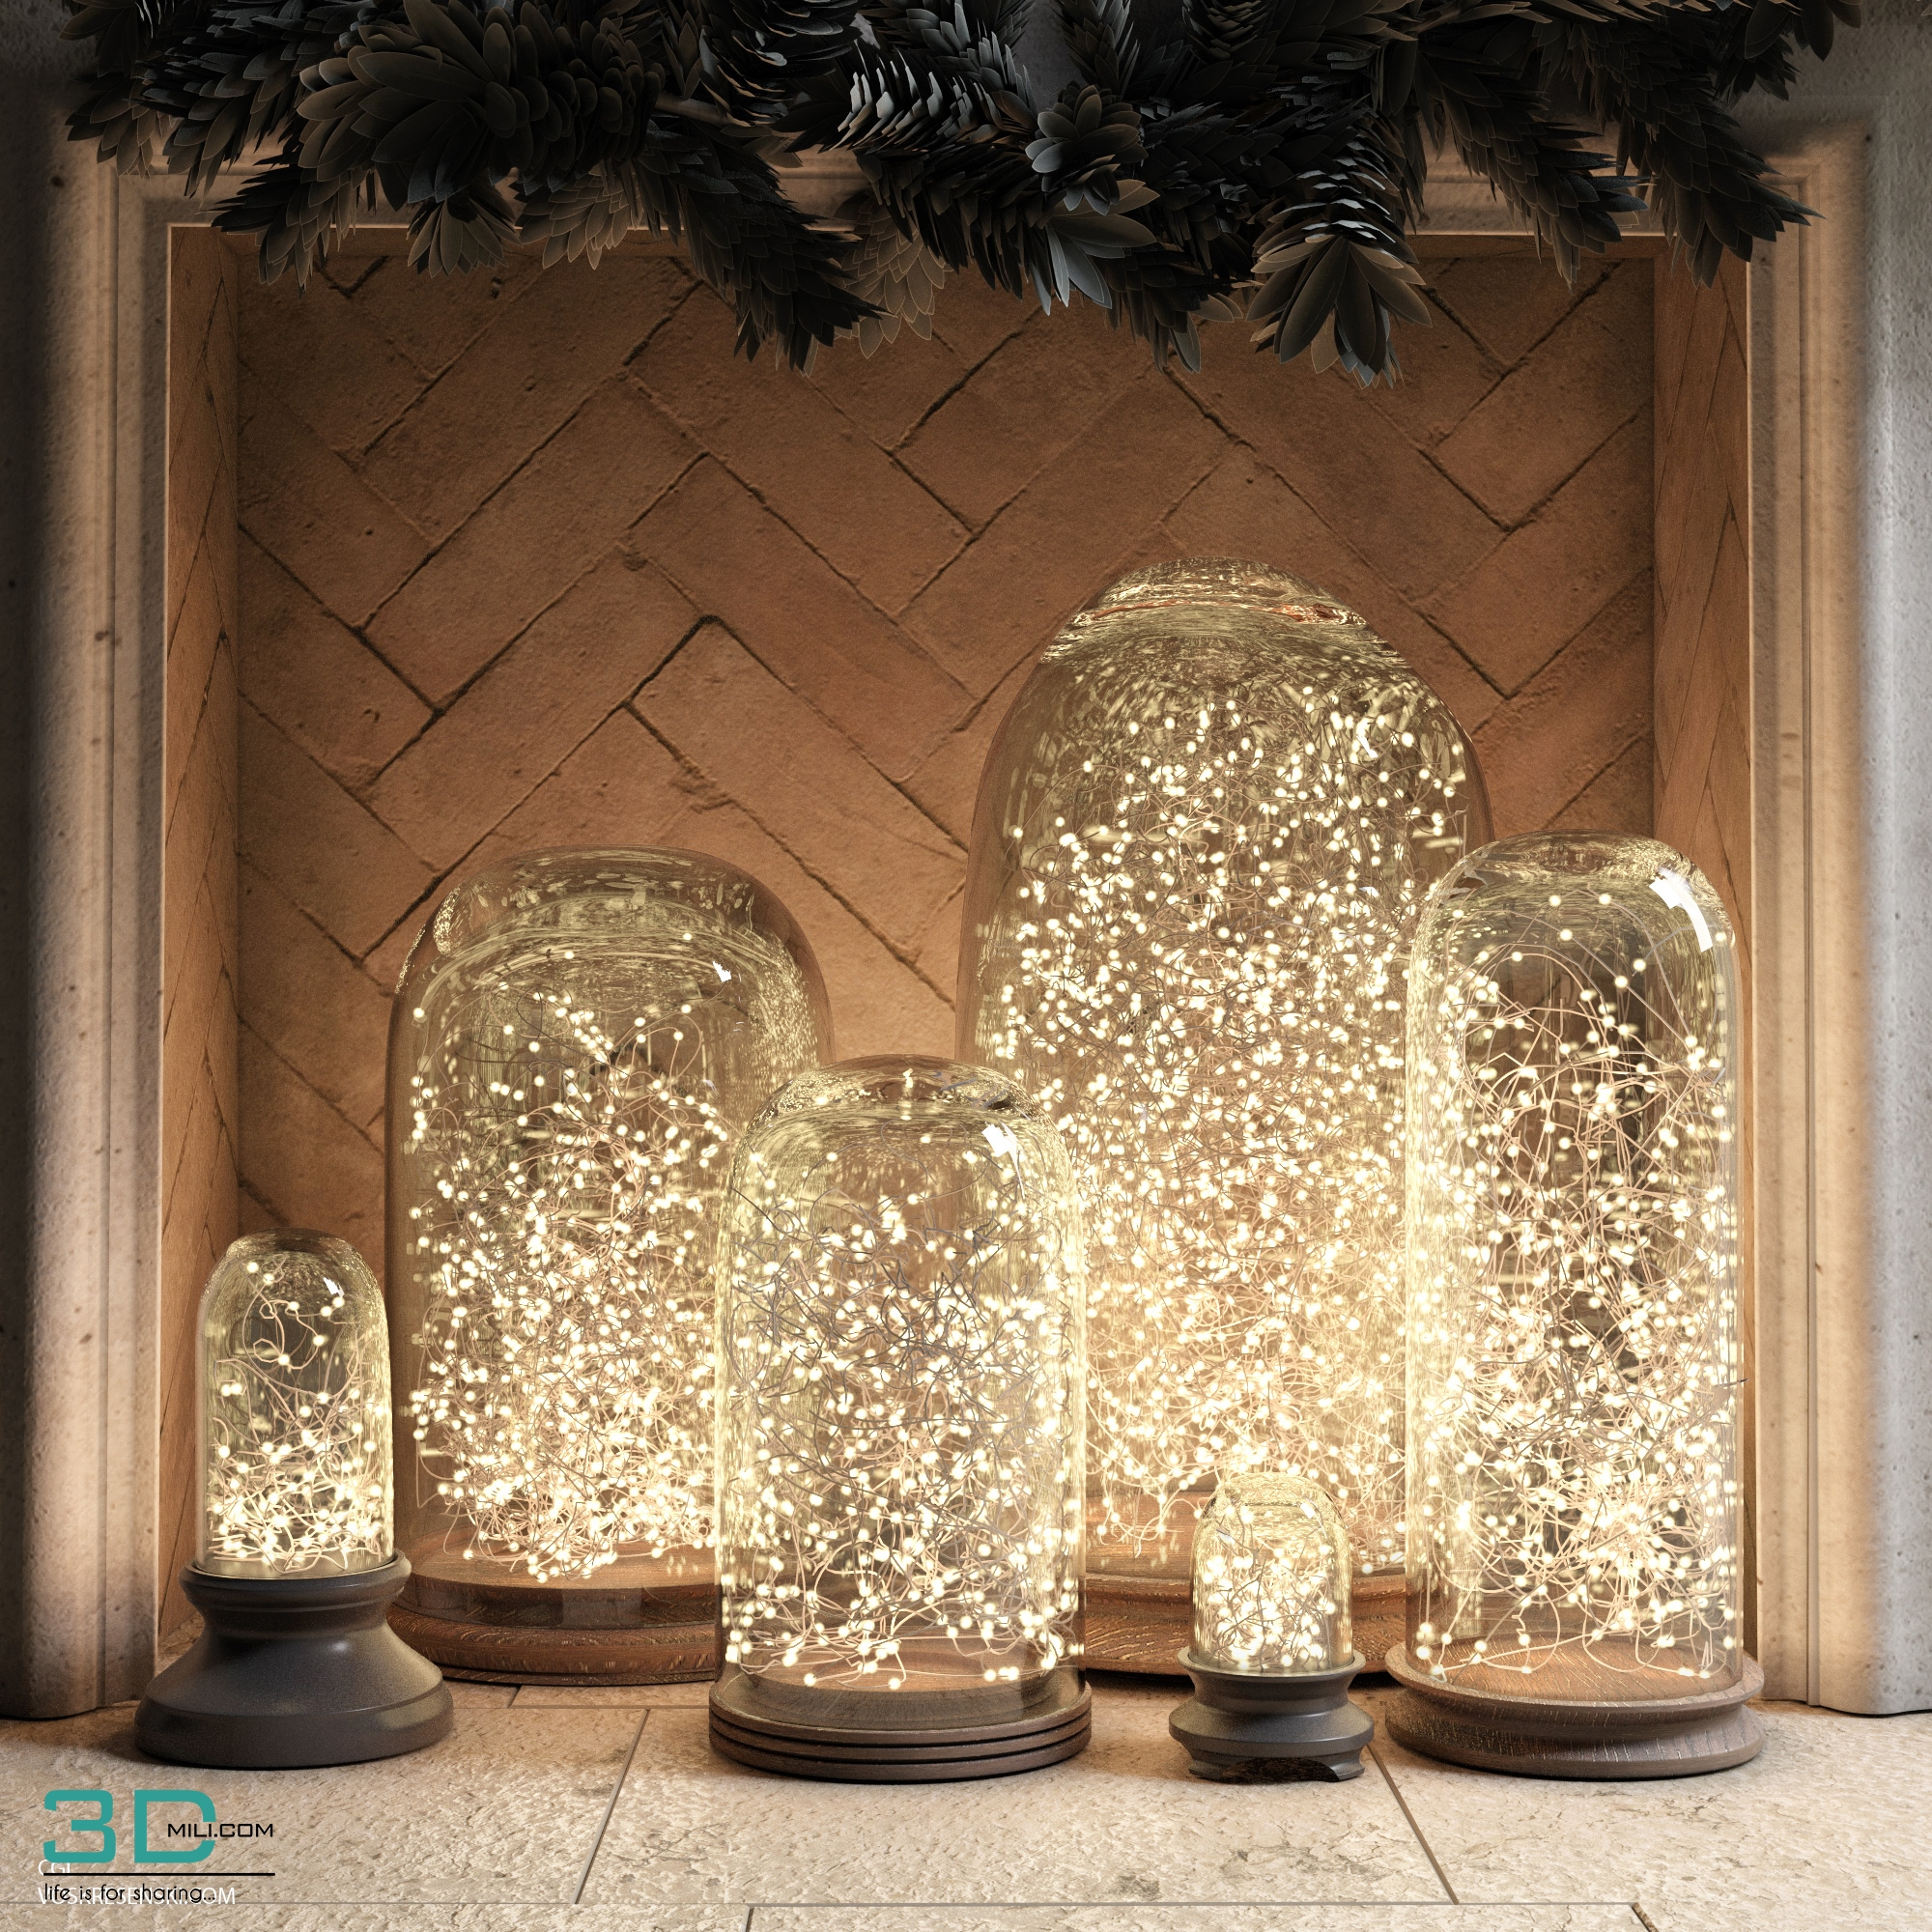 Christmas Decor 3 3dmodel Free Download